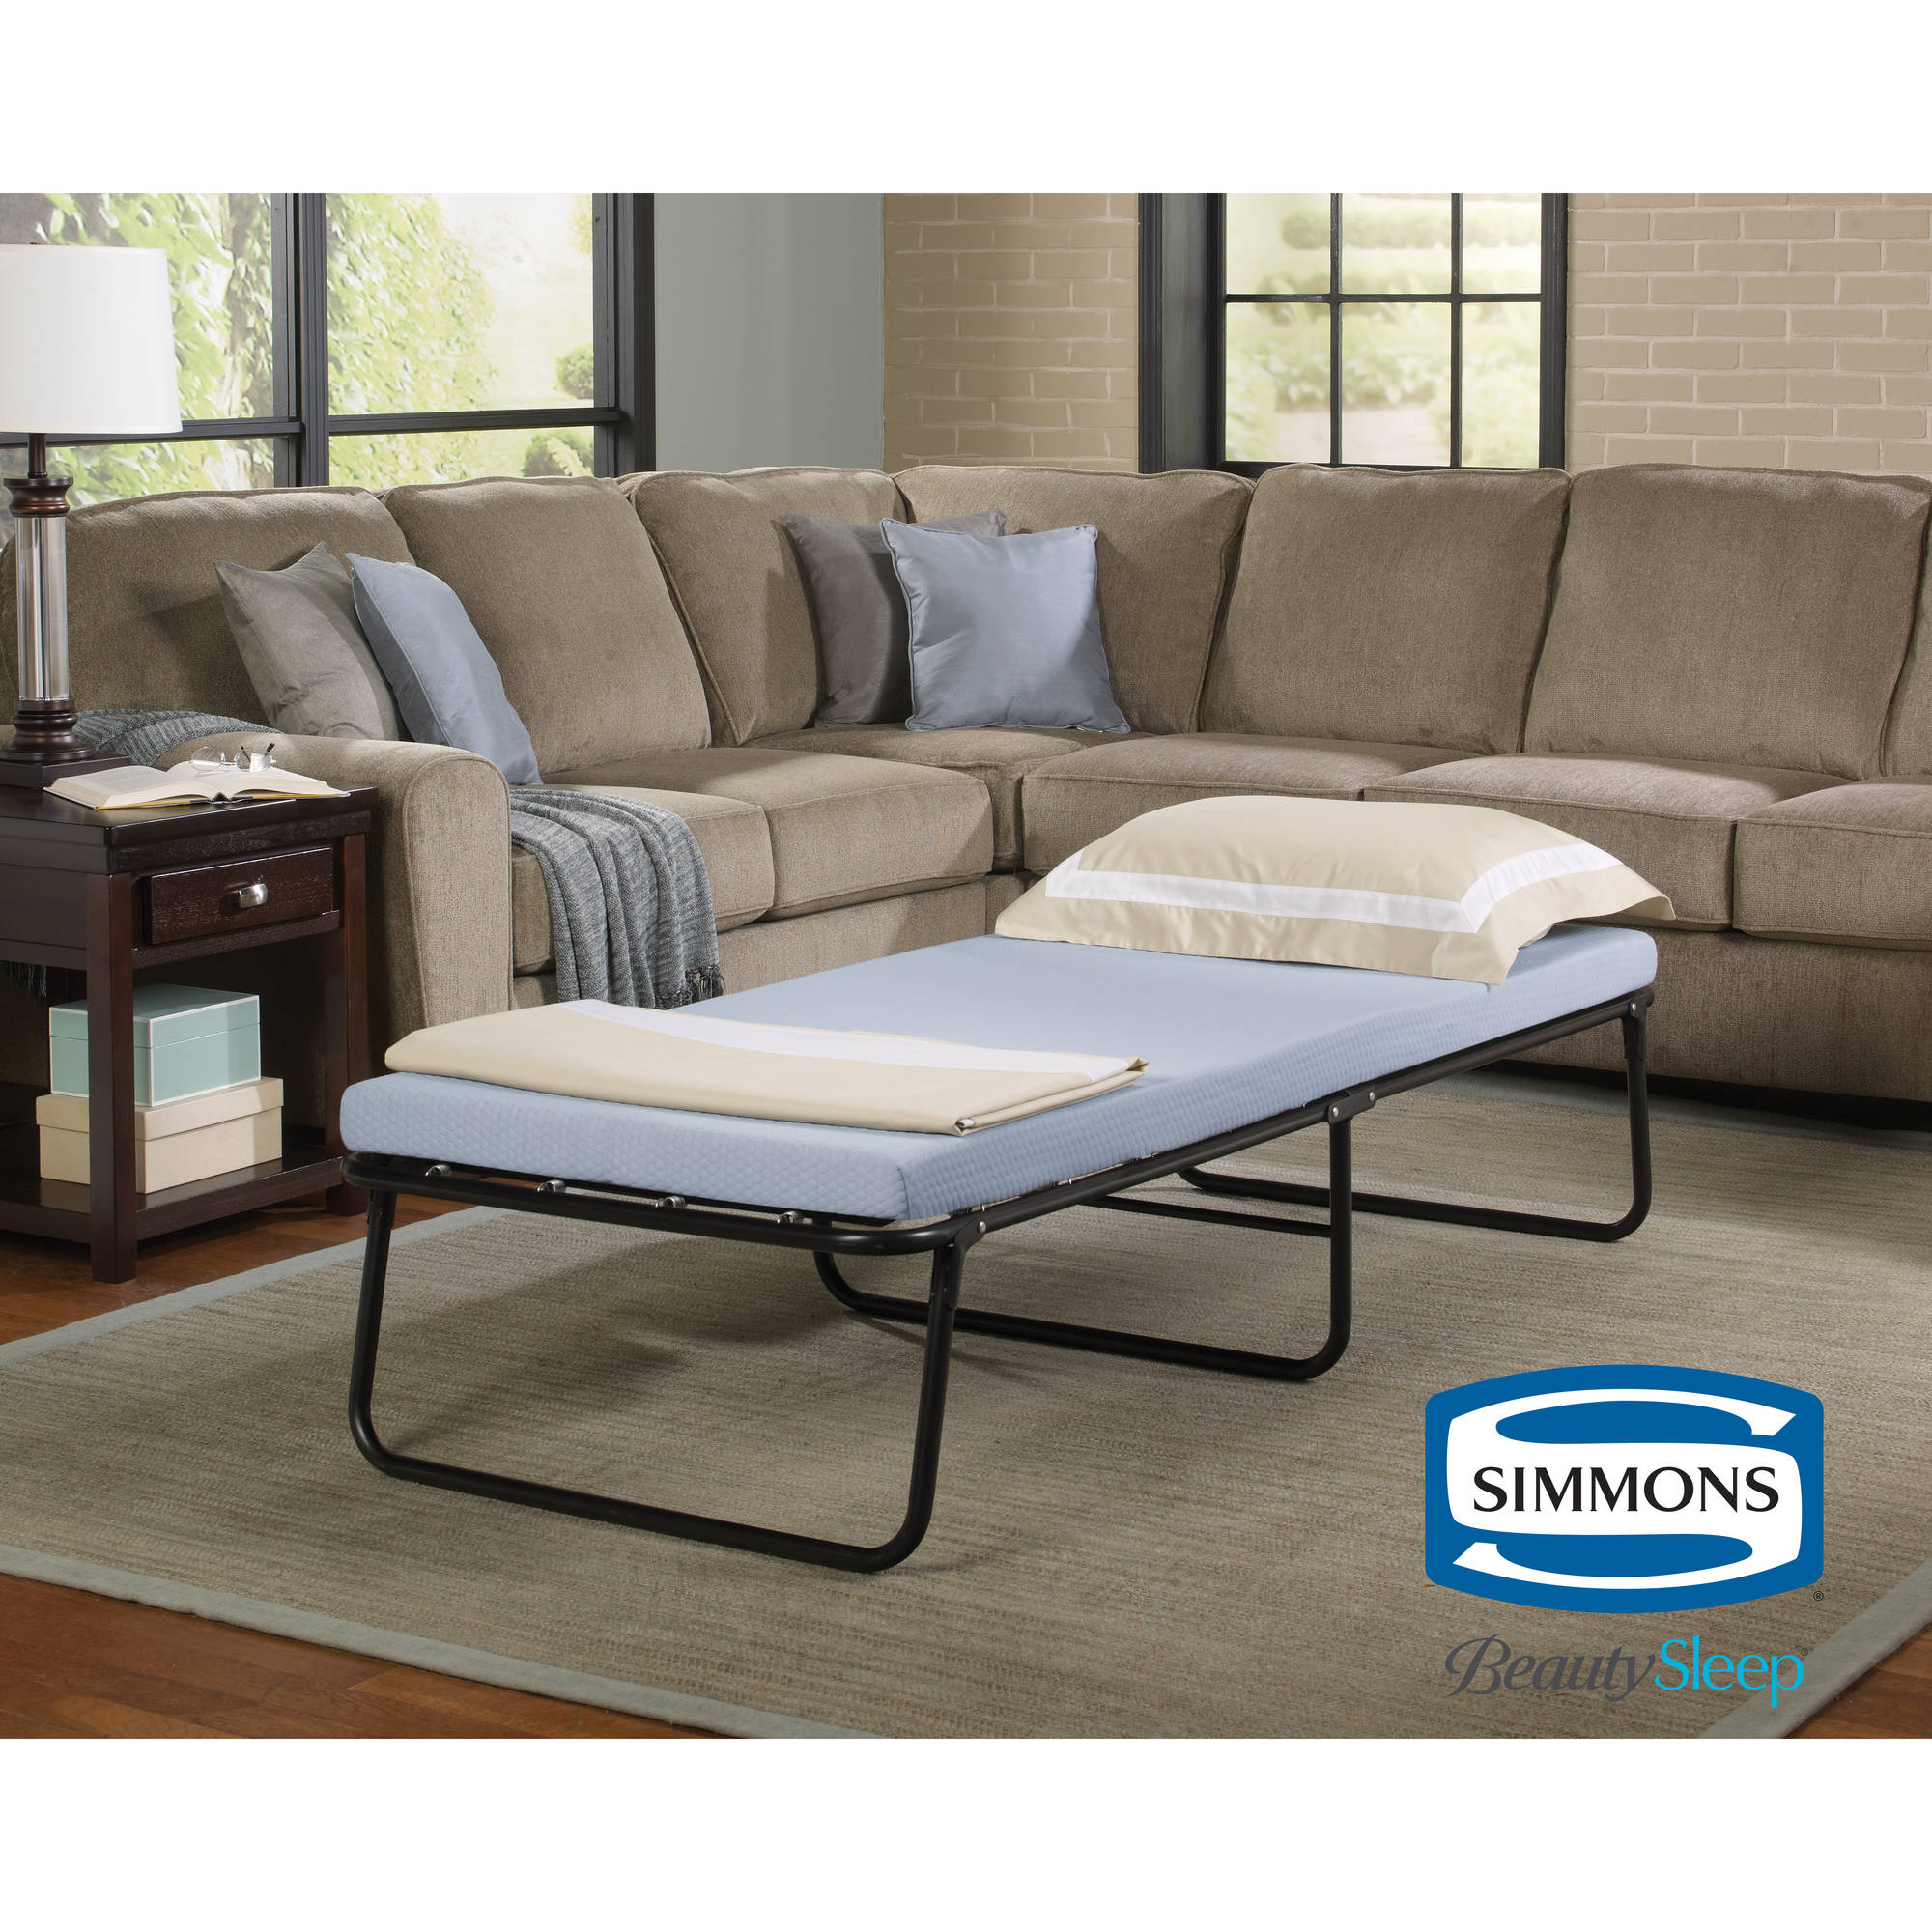 Simmons Beautysleep Foldaway Guest Bed Cot with Memory Foam Mattress, Multiple Sizes